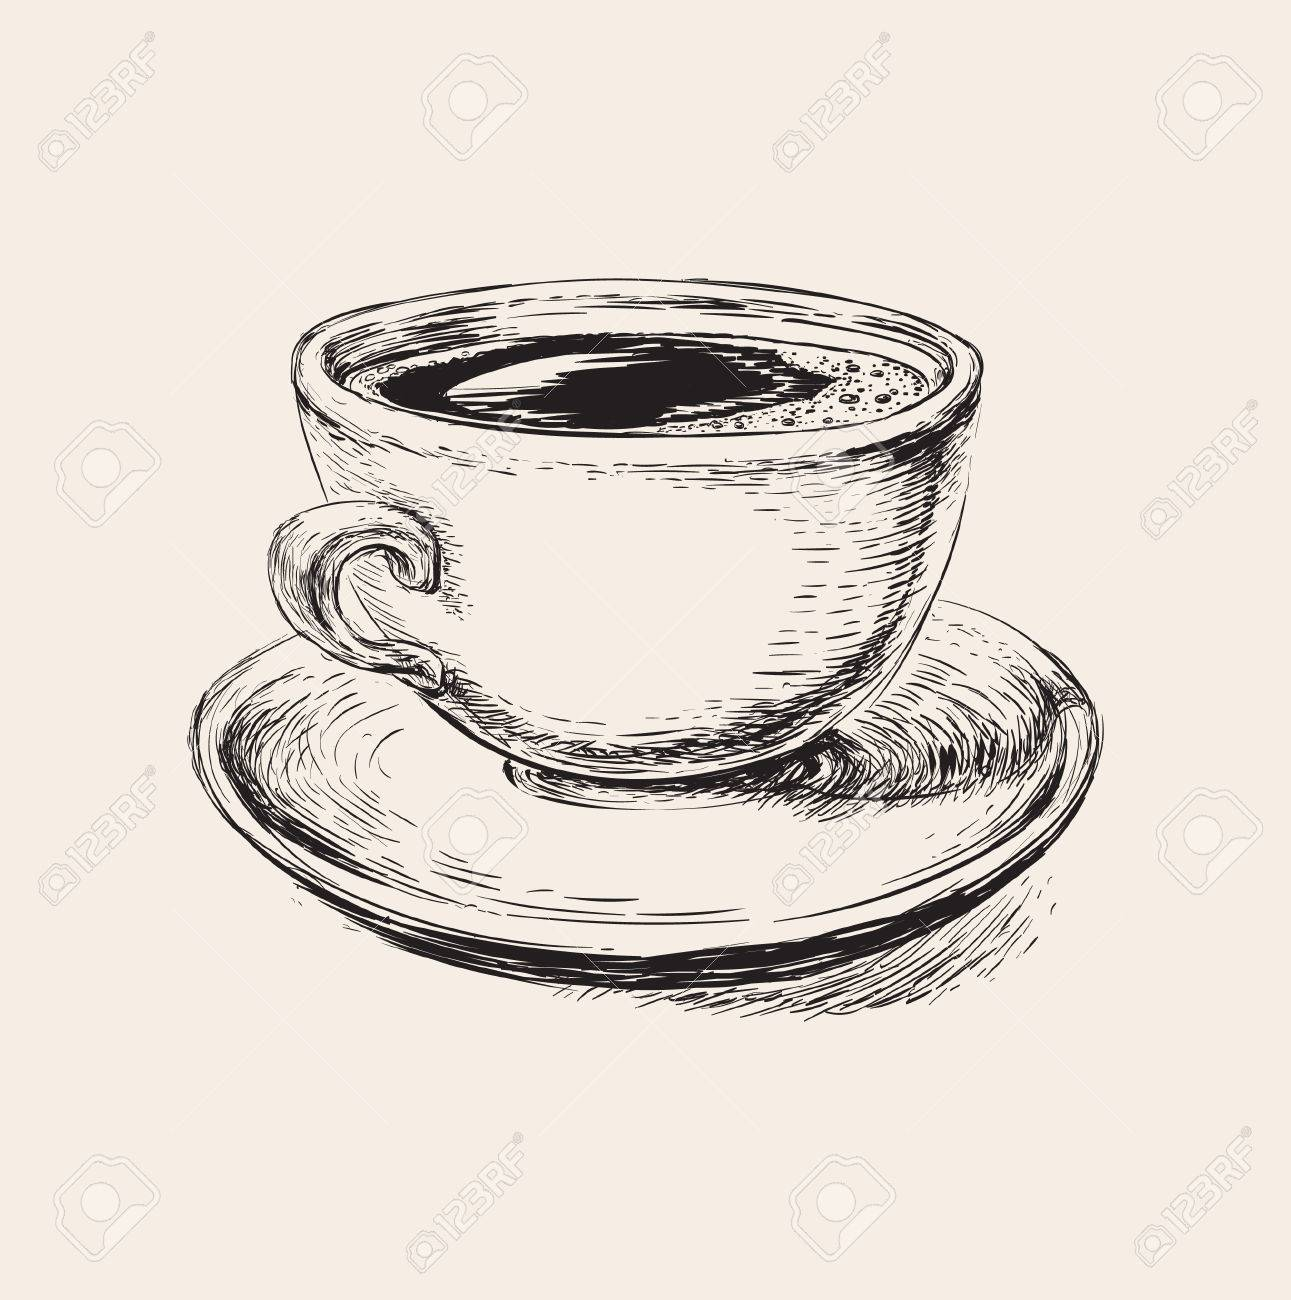 1291x1300 Sketch Coffee Cup Illustration Sketch Coffee Cup Illustration